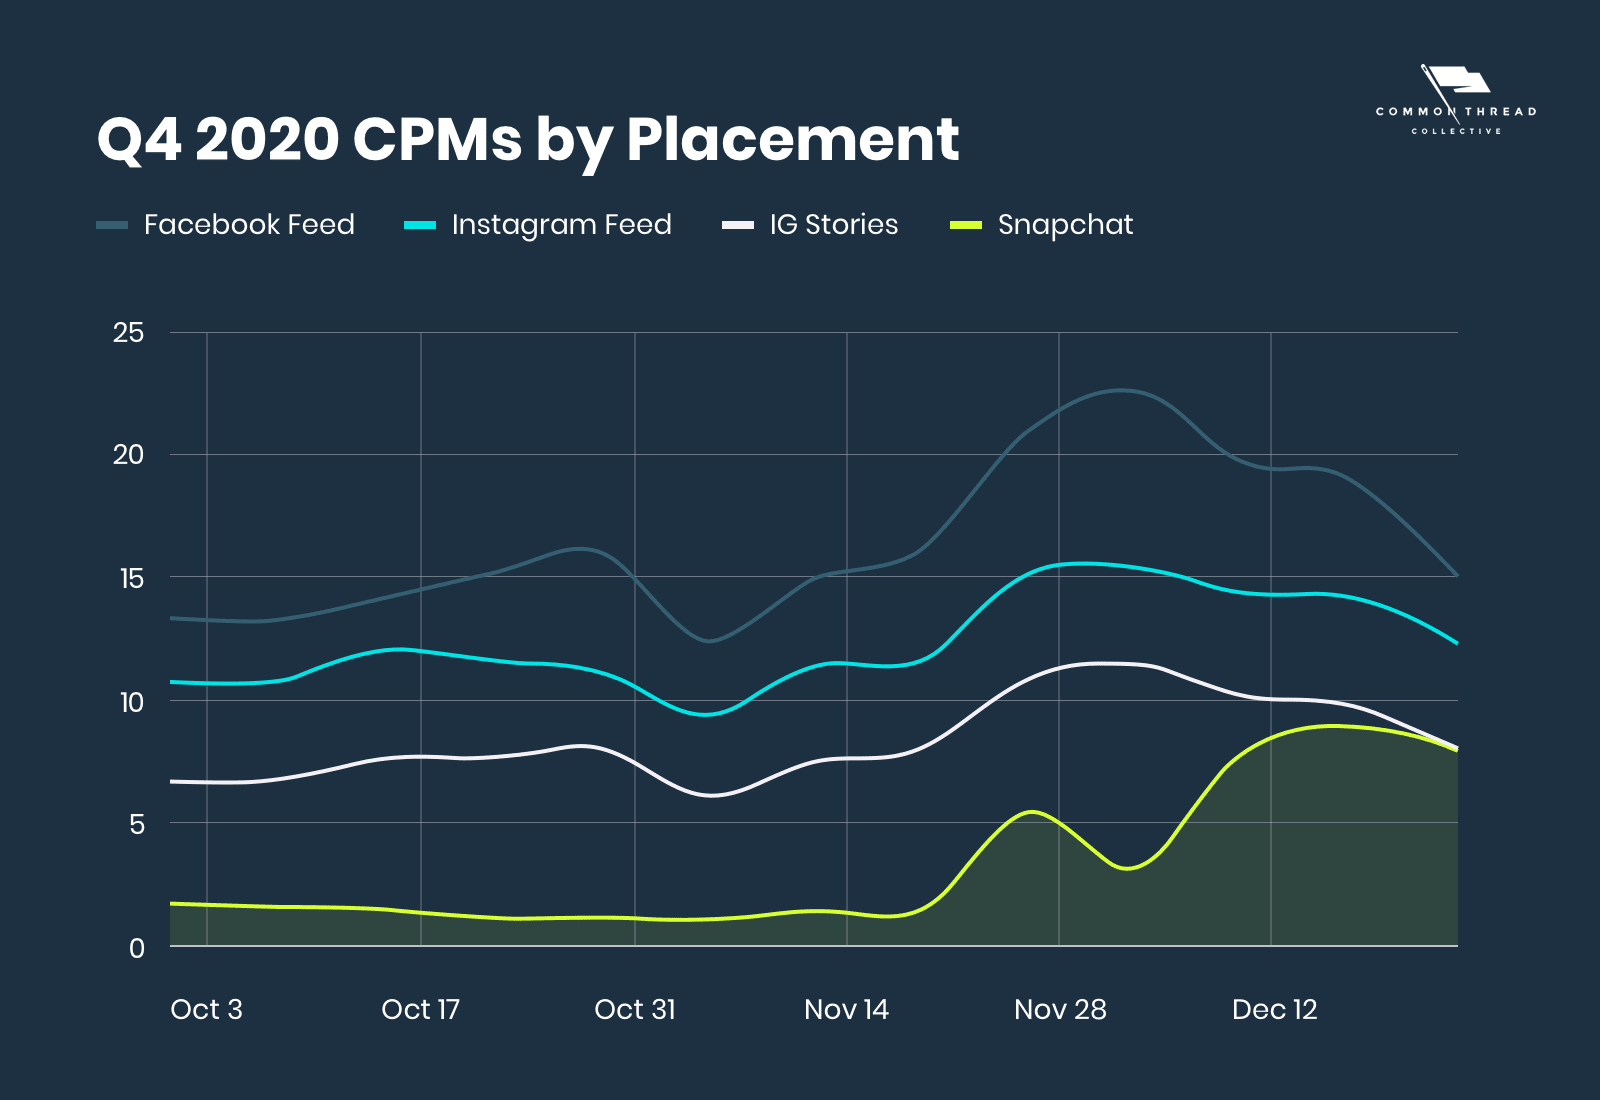 Q4 2020 CPMs by Placement (including SNAP)